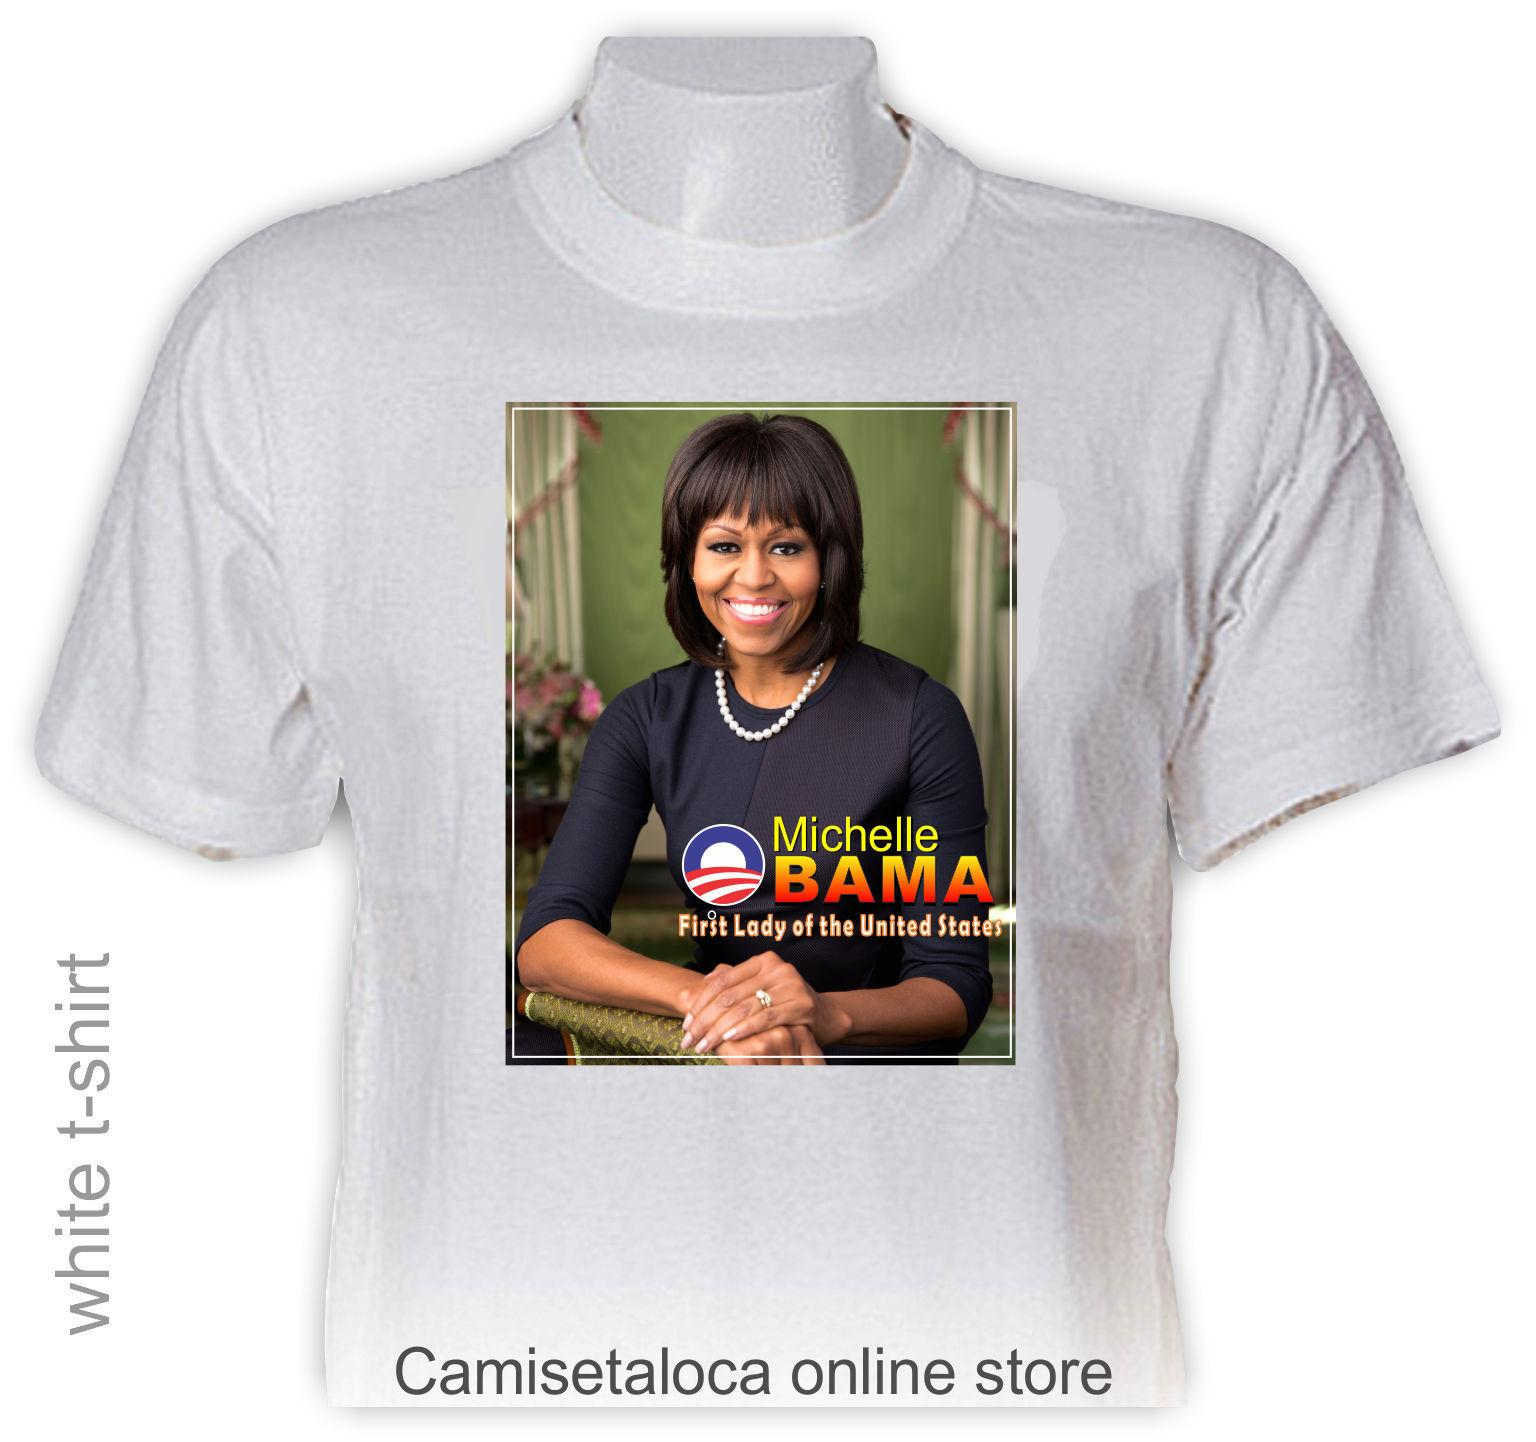 922a3c2a Michelle Obama T Shirt First Lady Of The United Special Edition Gree Tshirt  Colour Jersey Print T Shirt Shop Online T Shirts T Shirt From Happycup, ...